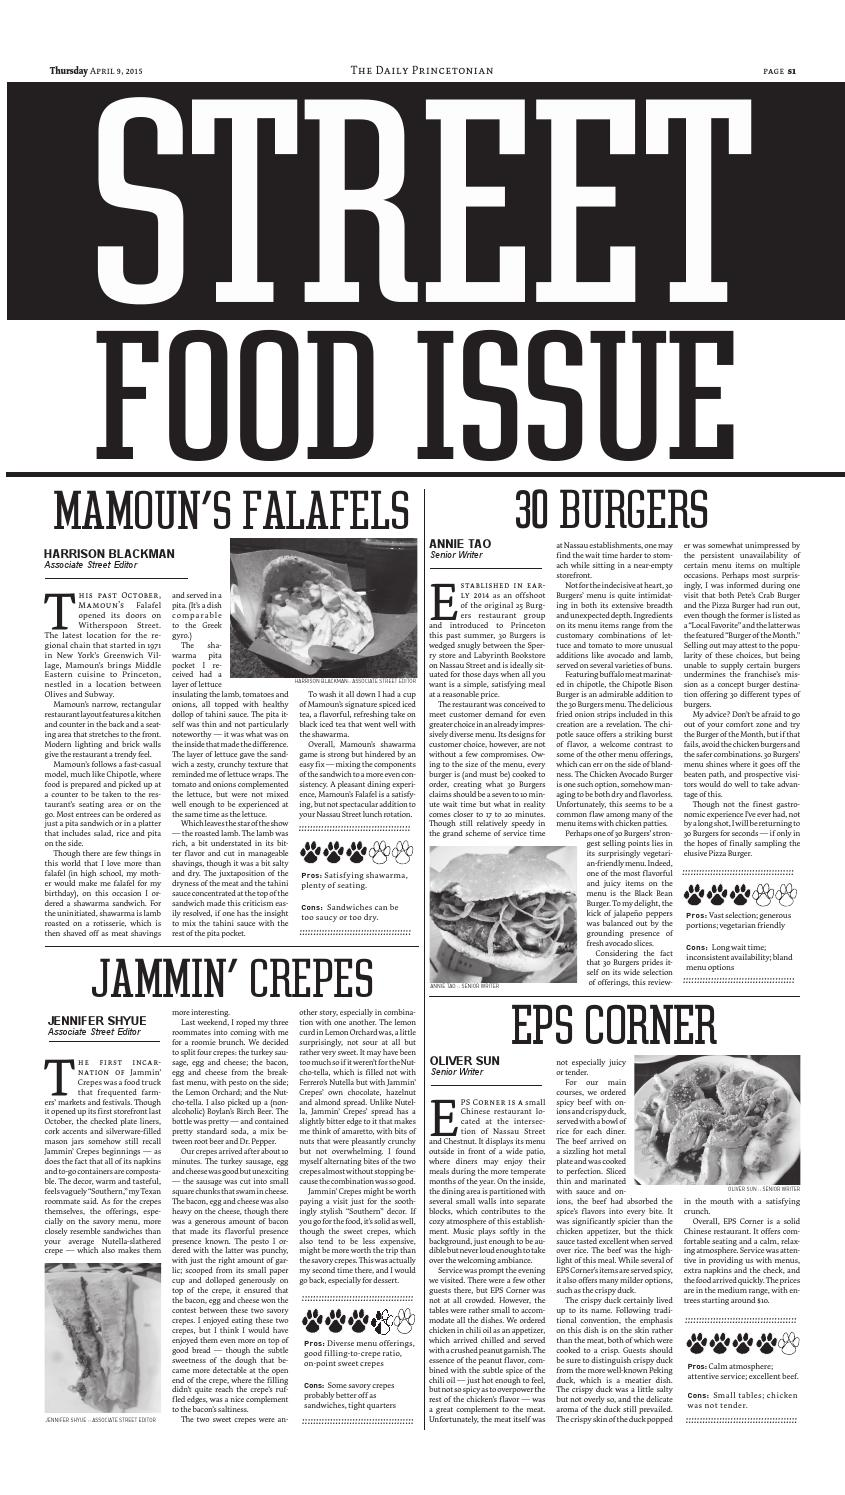 Review of Jammin' Crepes in Street section of The Daily Princetonian